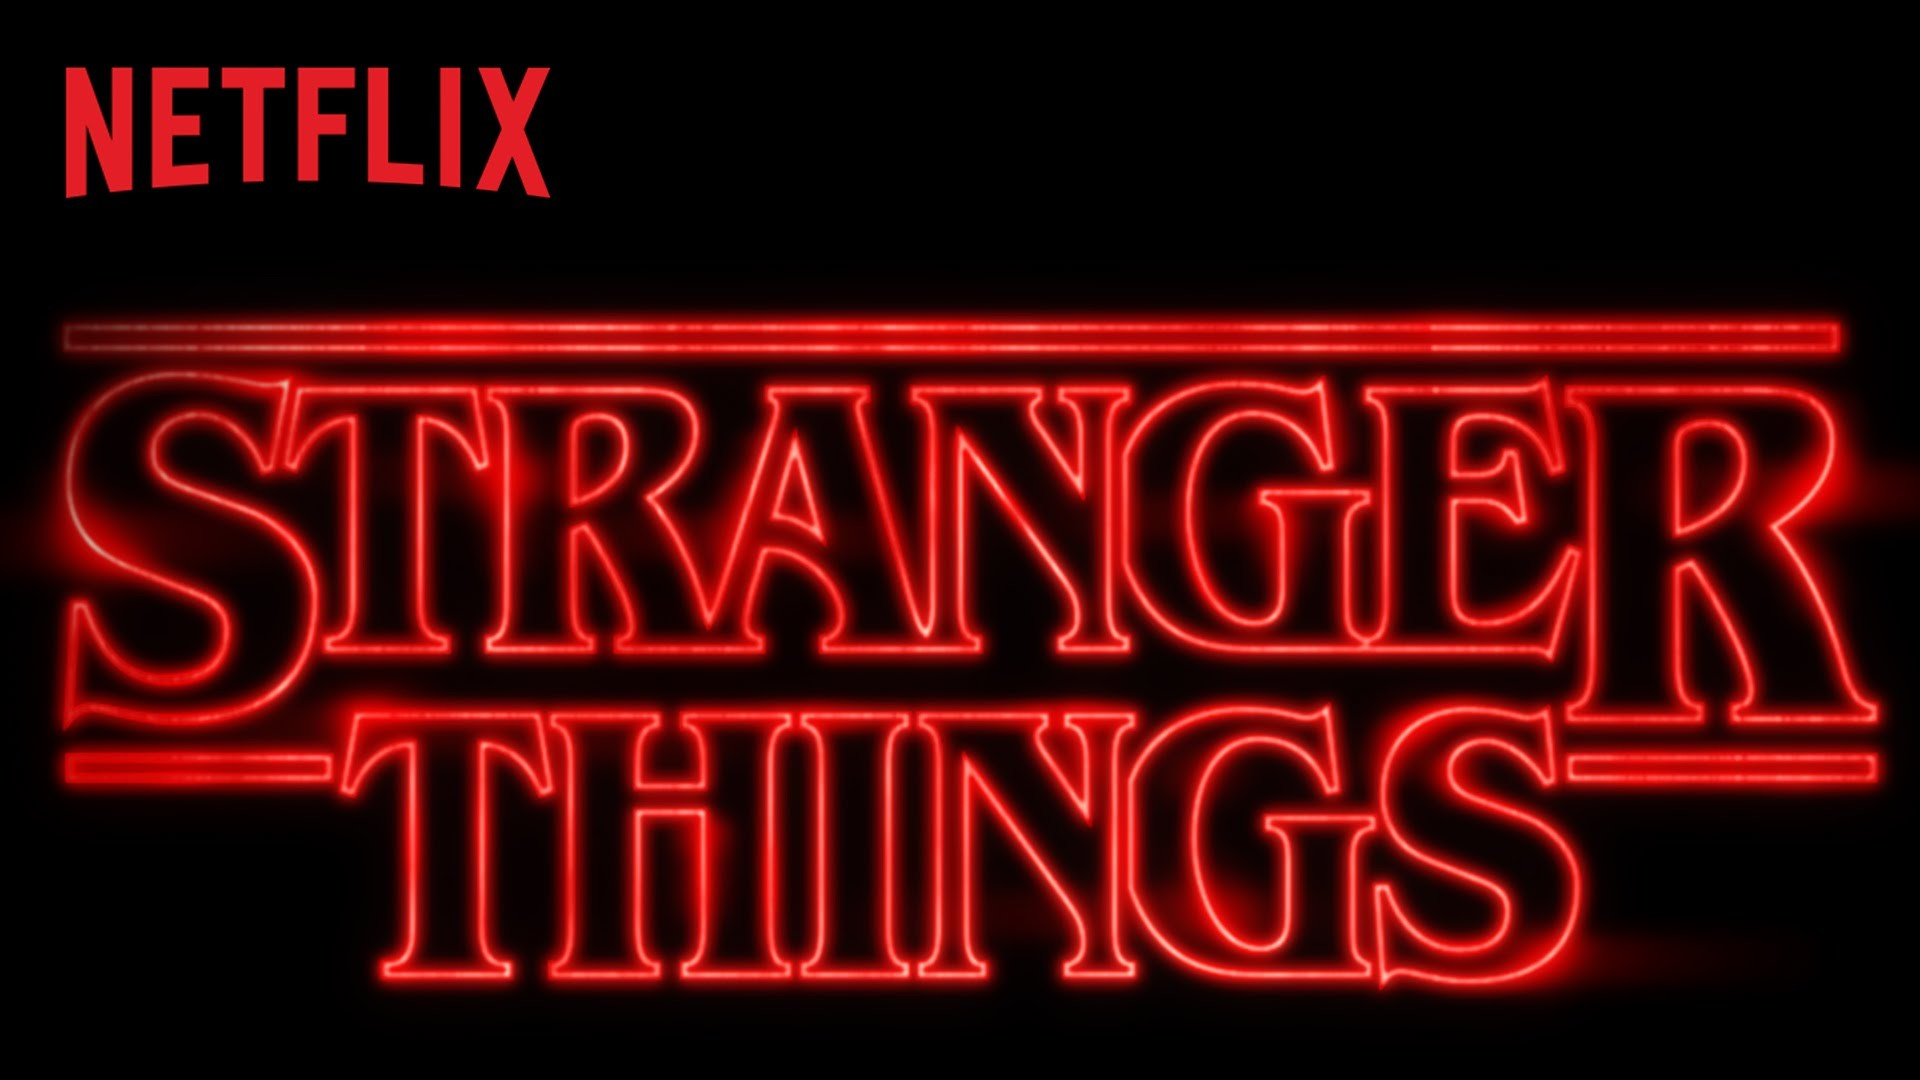 Netflix Wallpapers 70 Images